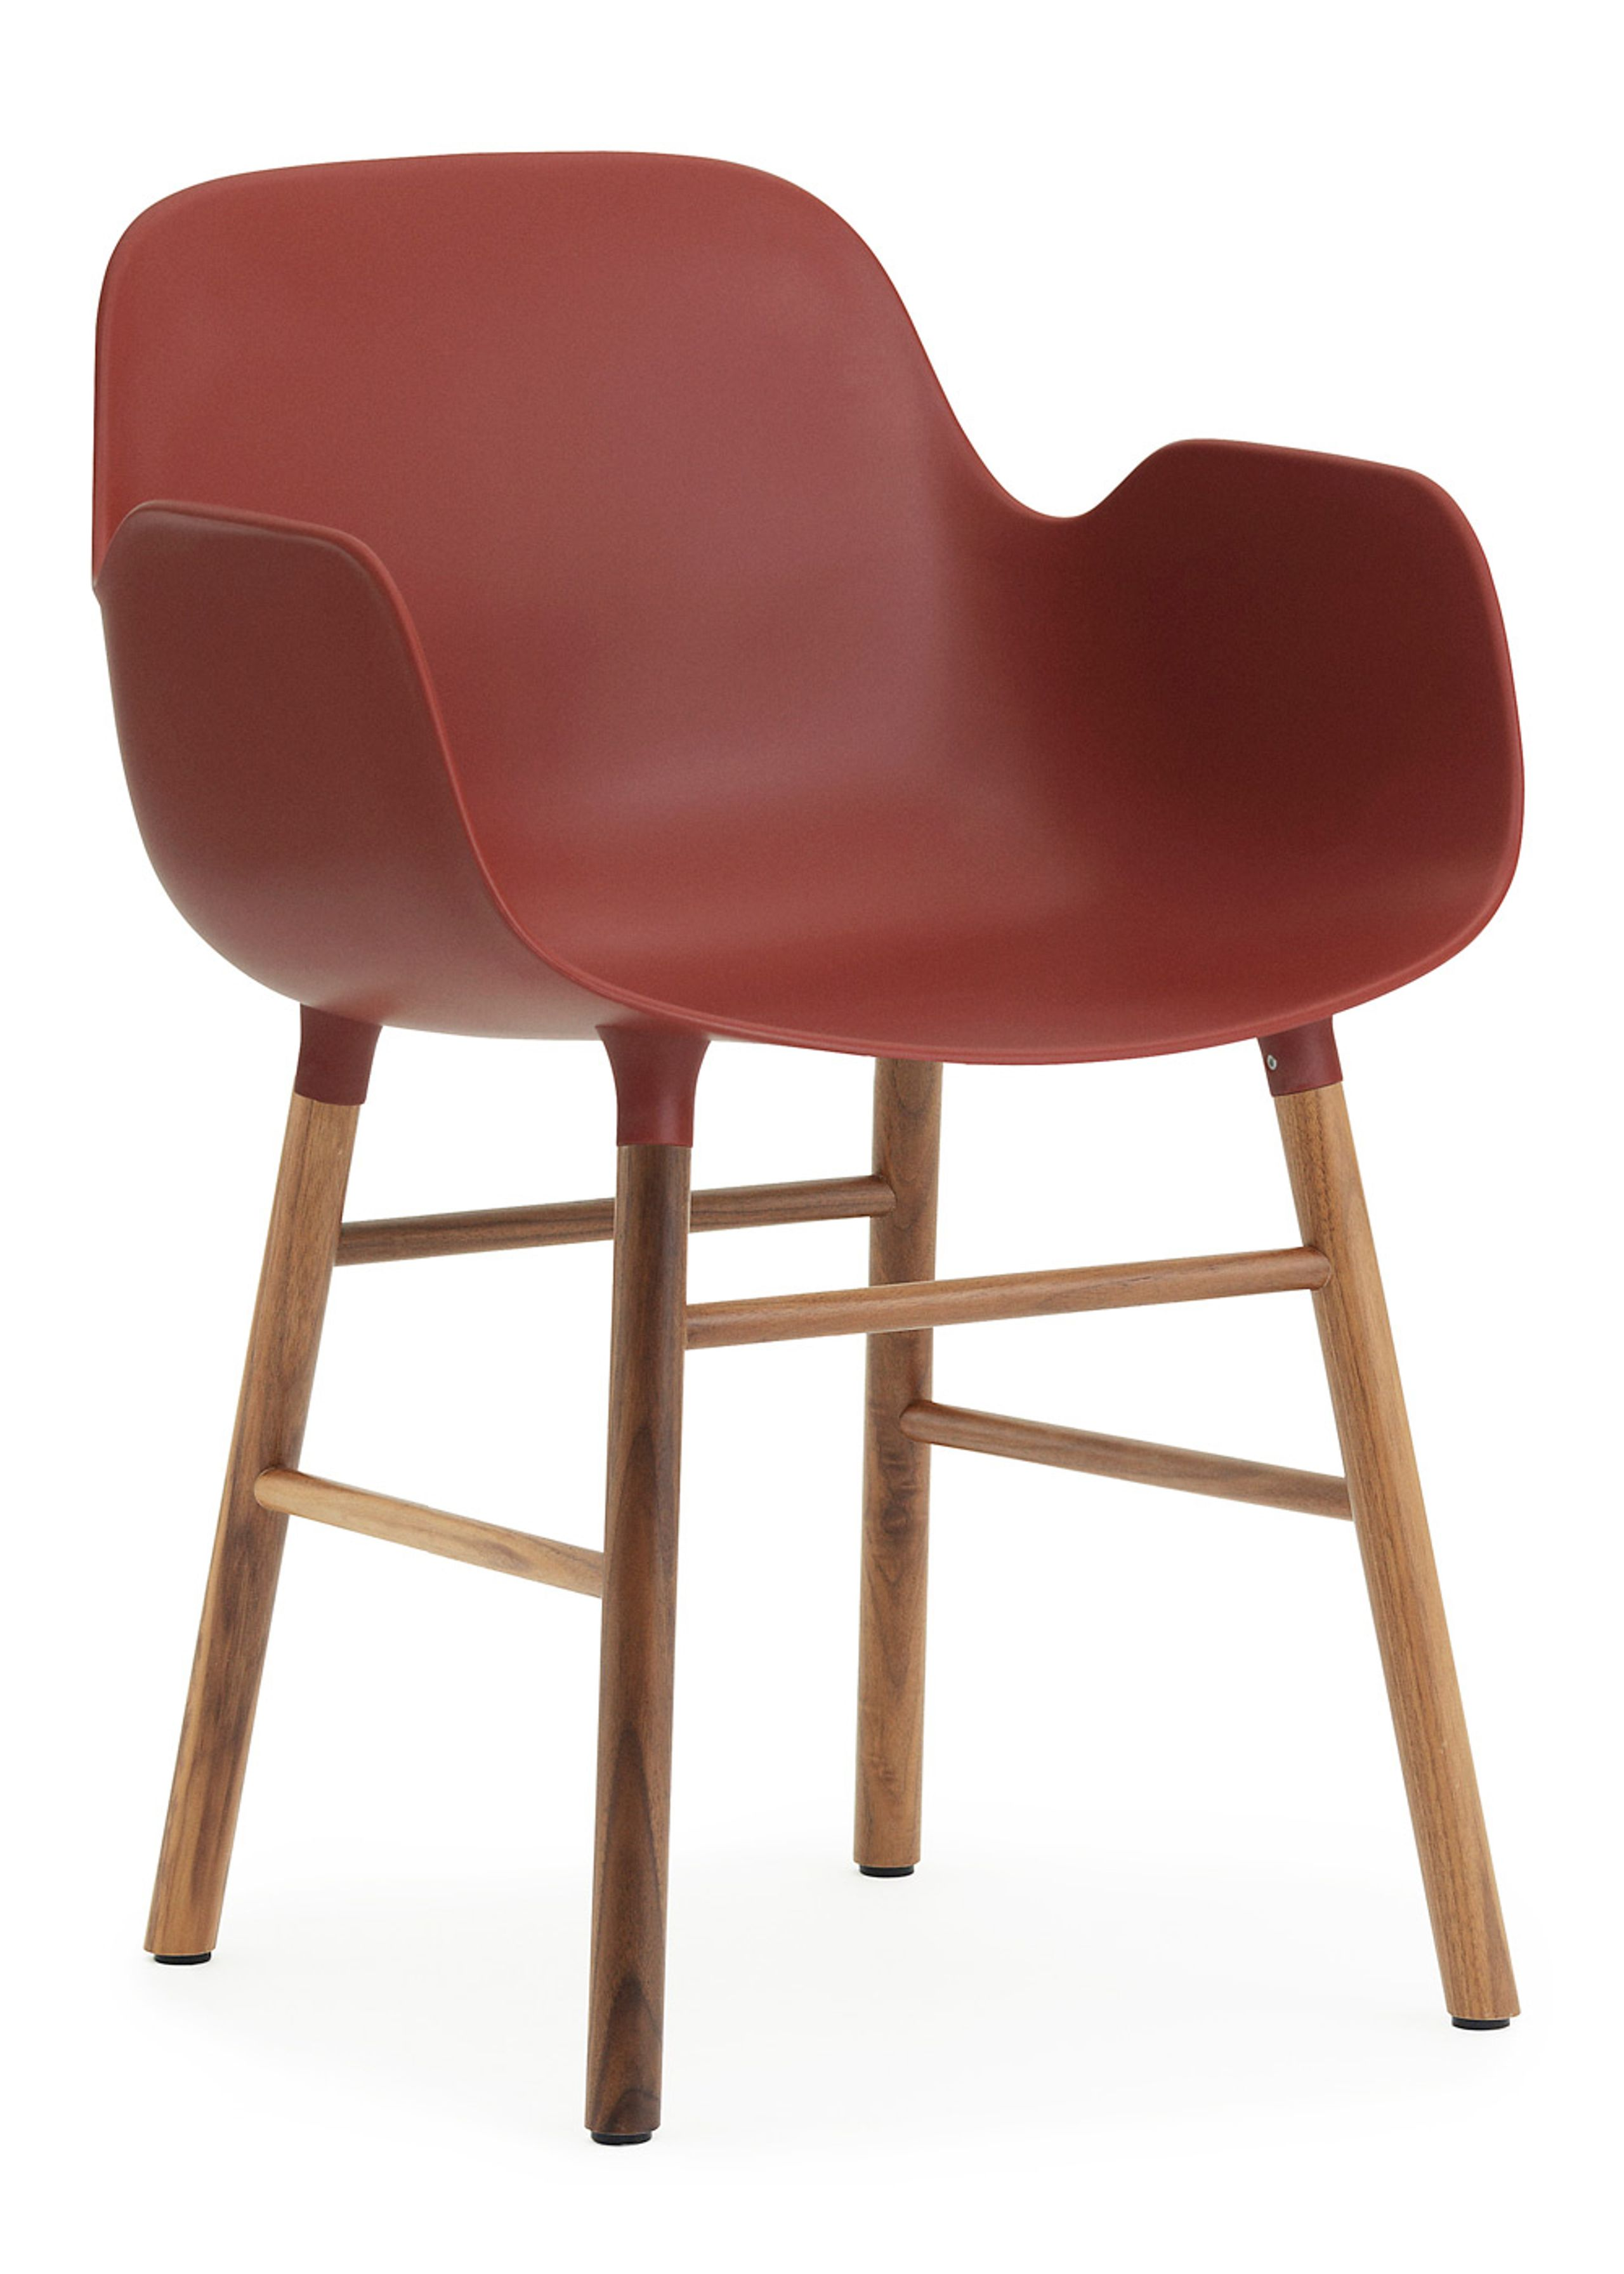 Image of   Form Armchair